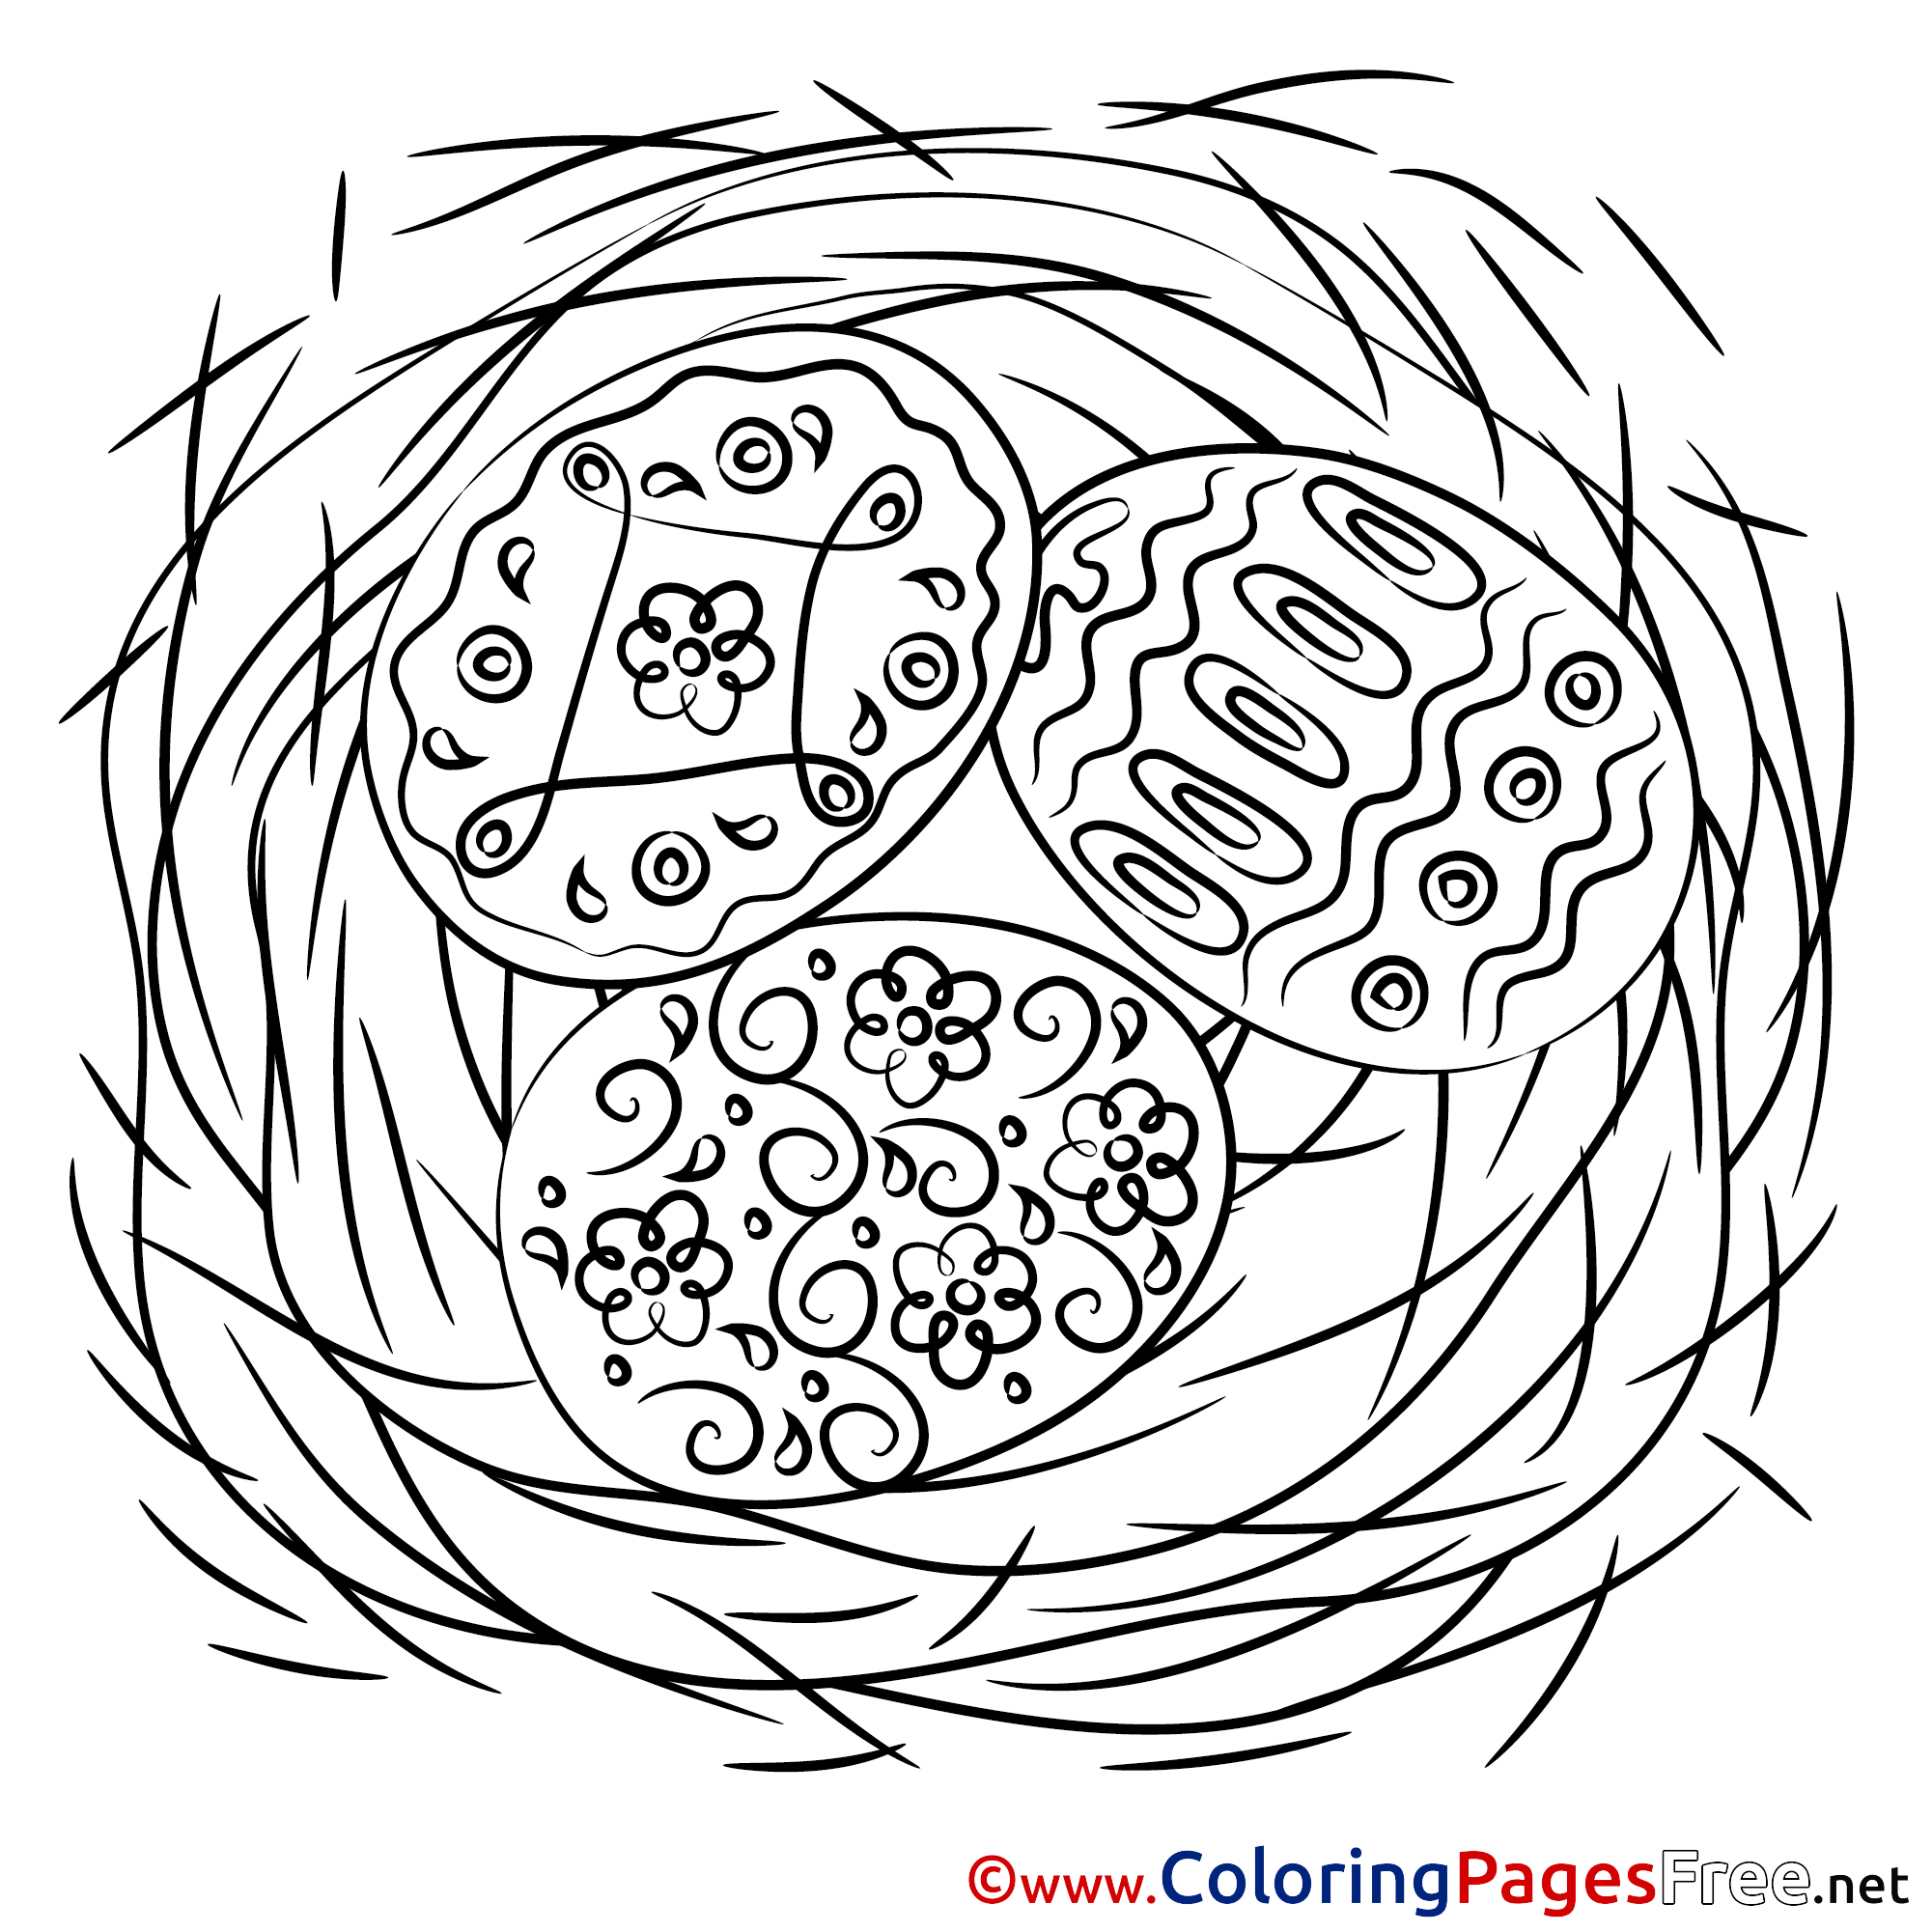 Passover Coloring Pages Easter